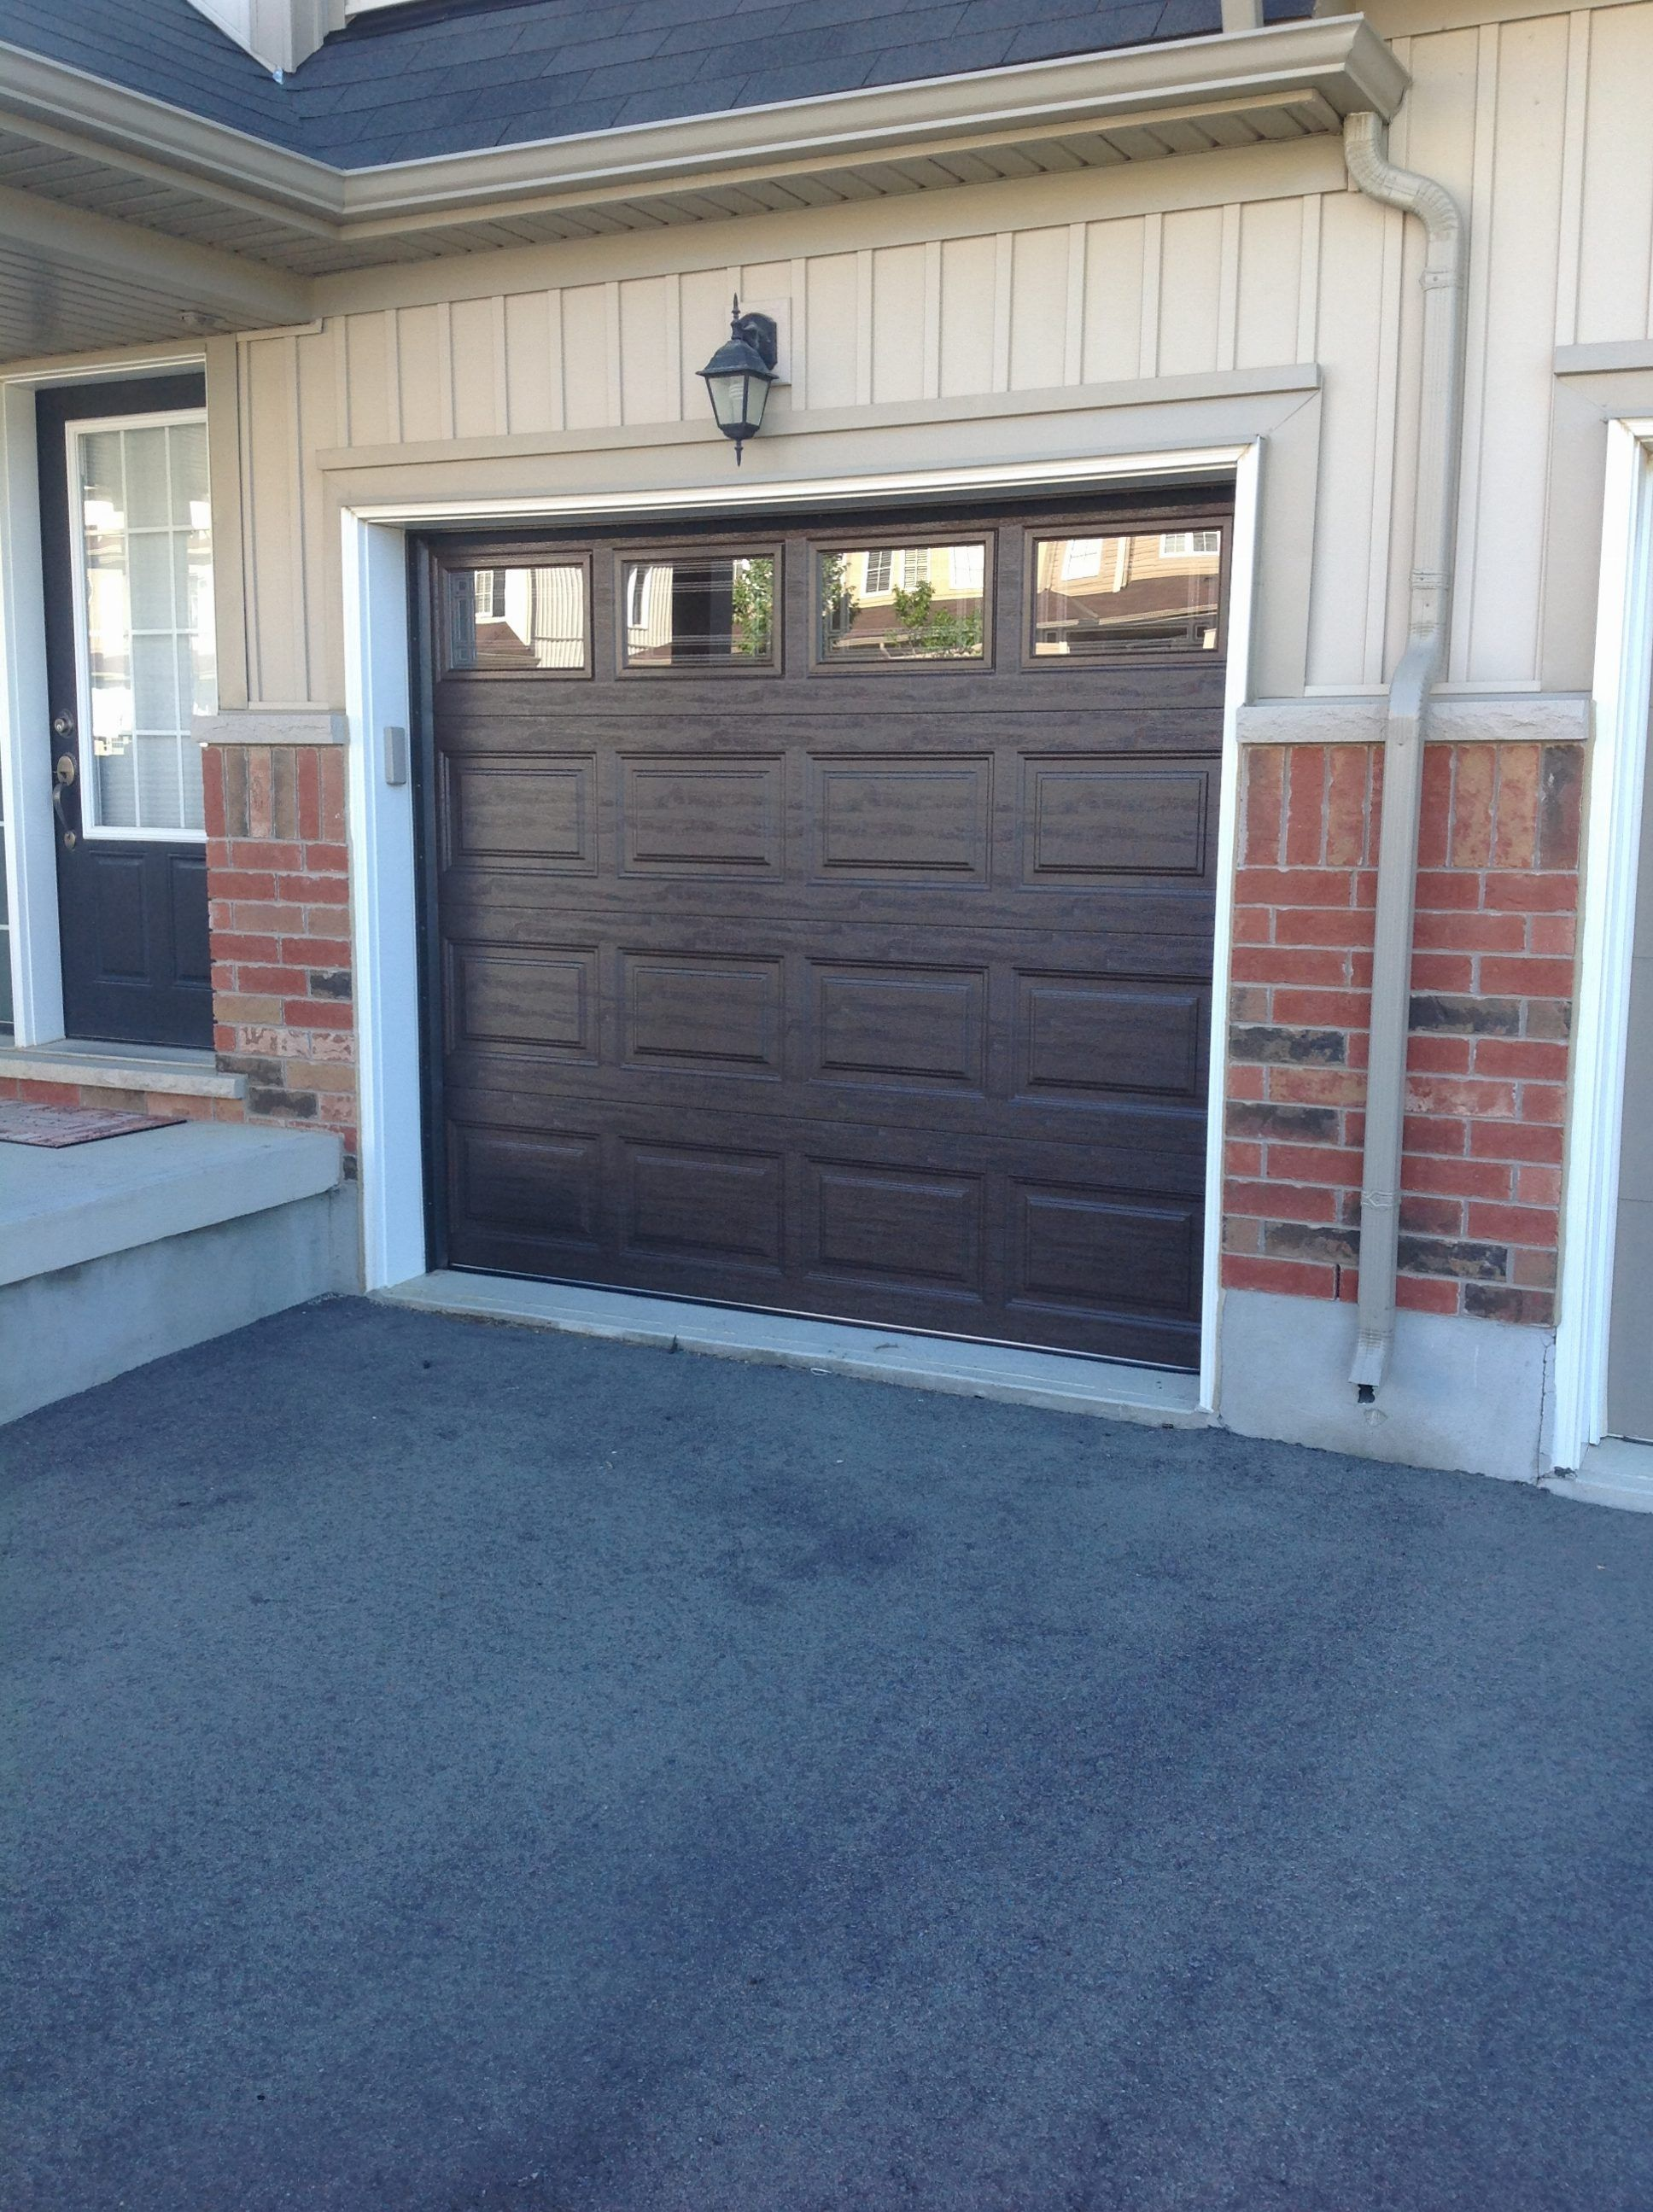 Garage doors oakville oakville garage doors garage door openers garage doors oakville area rubansaba